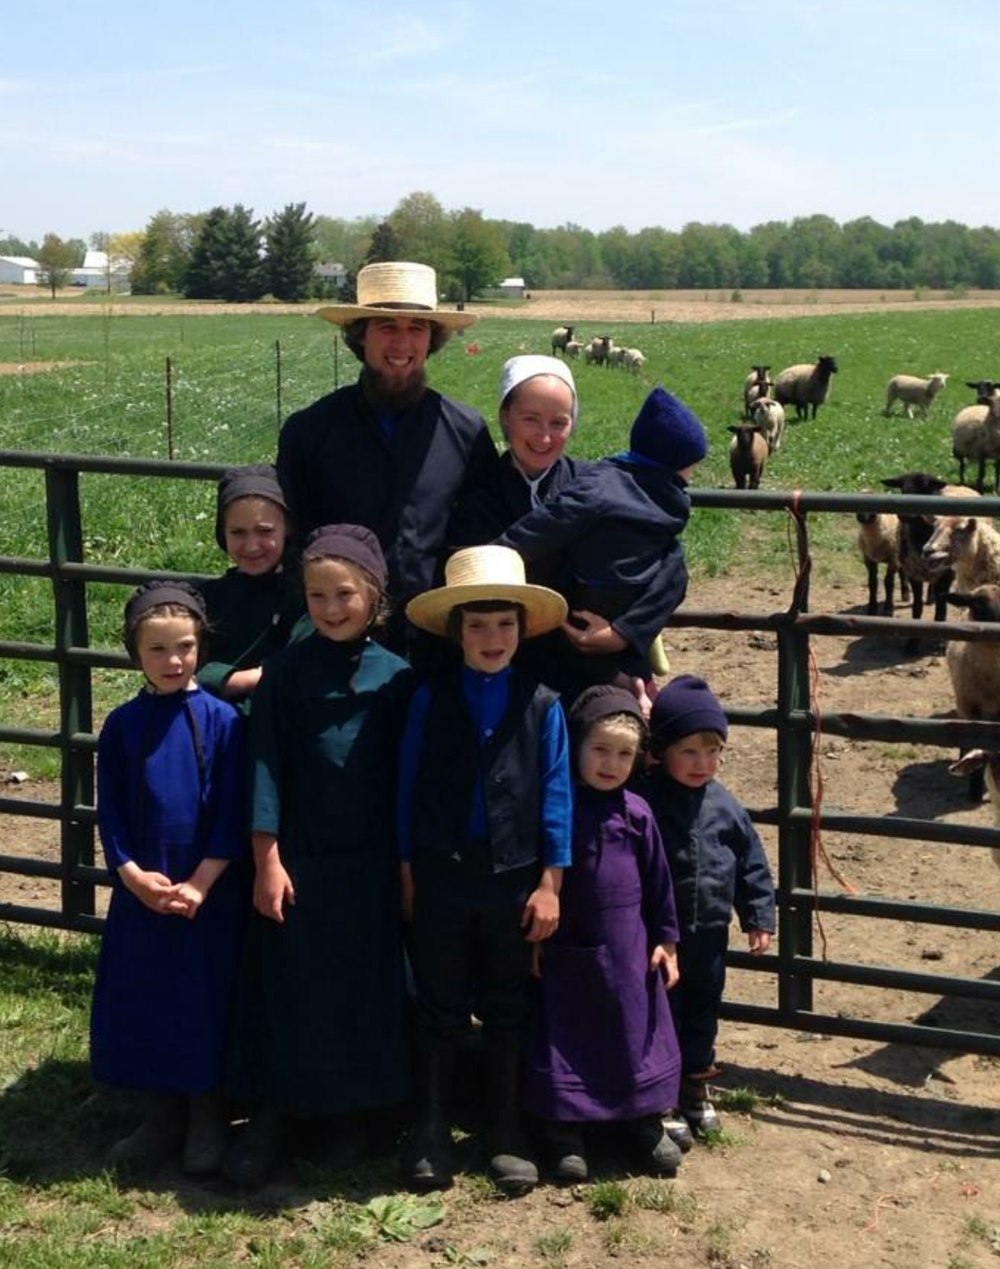 amish culture interview with the langlier Do you want to know how the amish live we have put together an amish 101 section that tells you all about how the amish live, drive, use electricity, work, speak and dress.